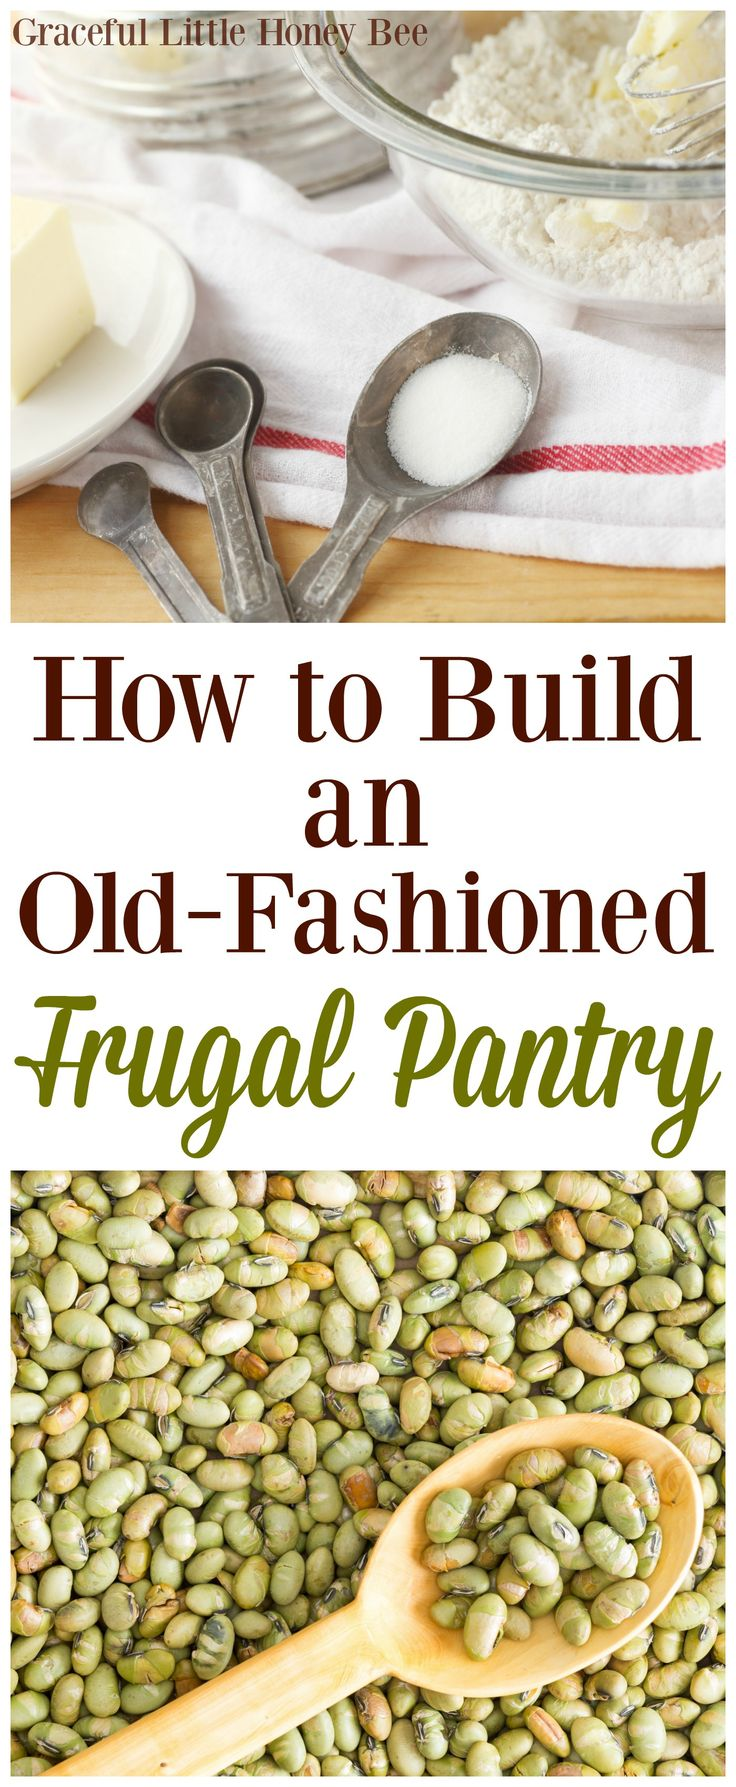 Yorkie haircuts and yorkie grooming resources rachael edwards - How To Build An Old Fashioned Frugal Pantry